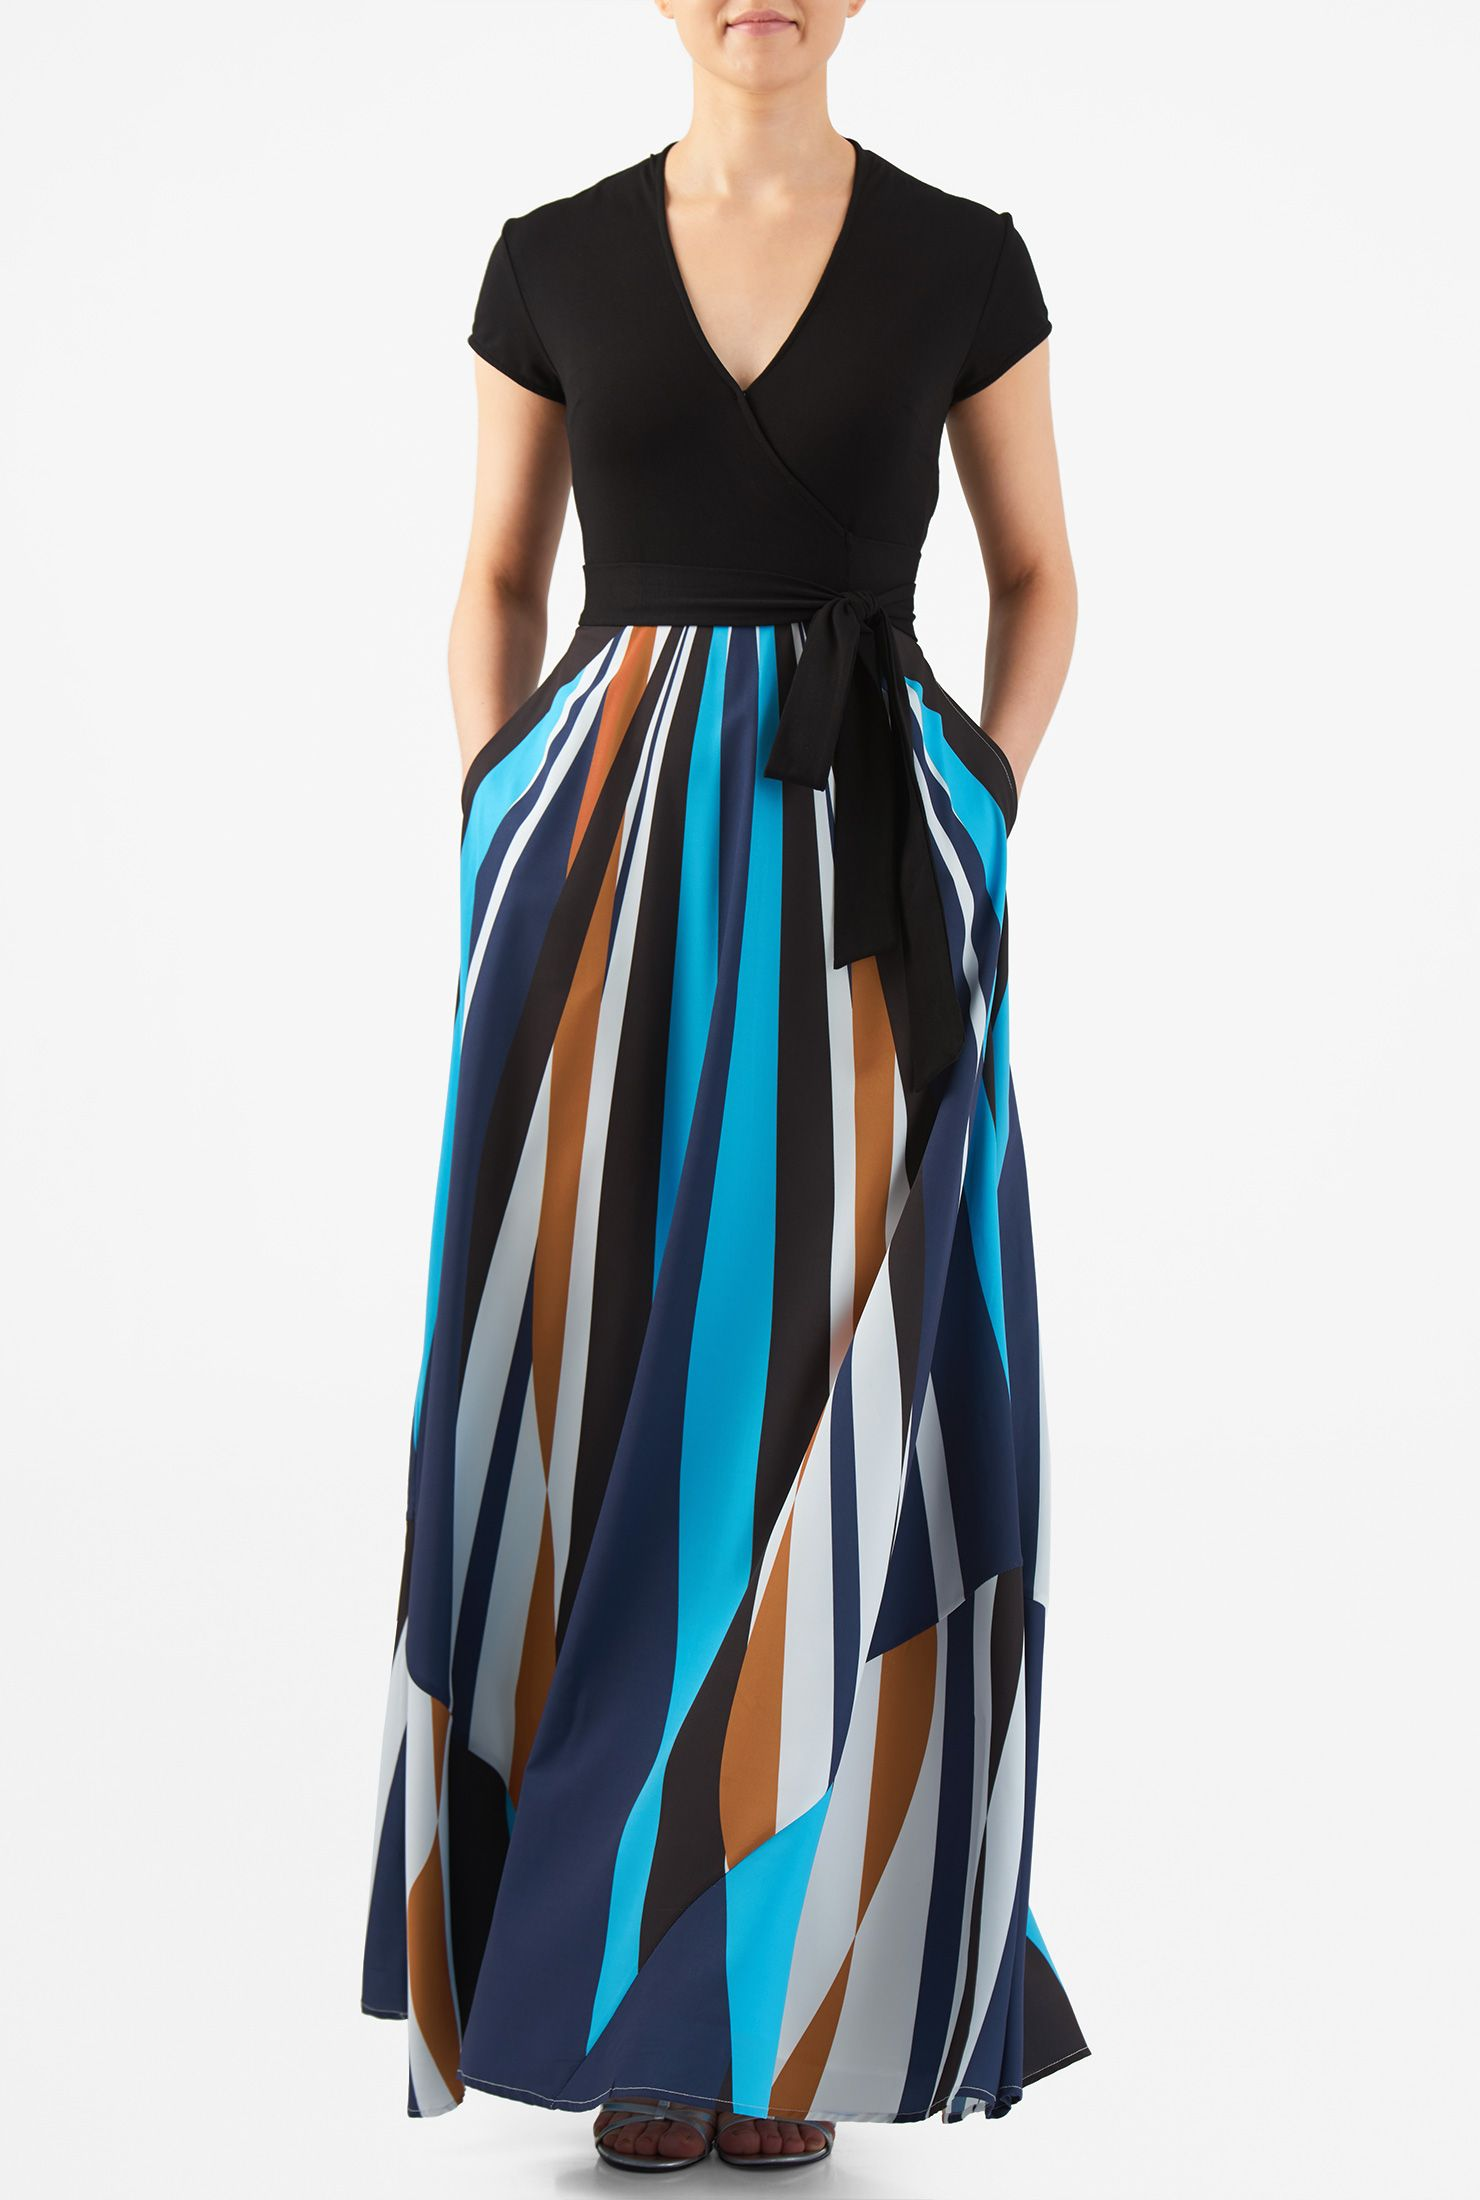 Seamed crepe dress in color block maxi dress